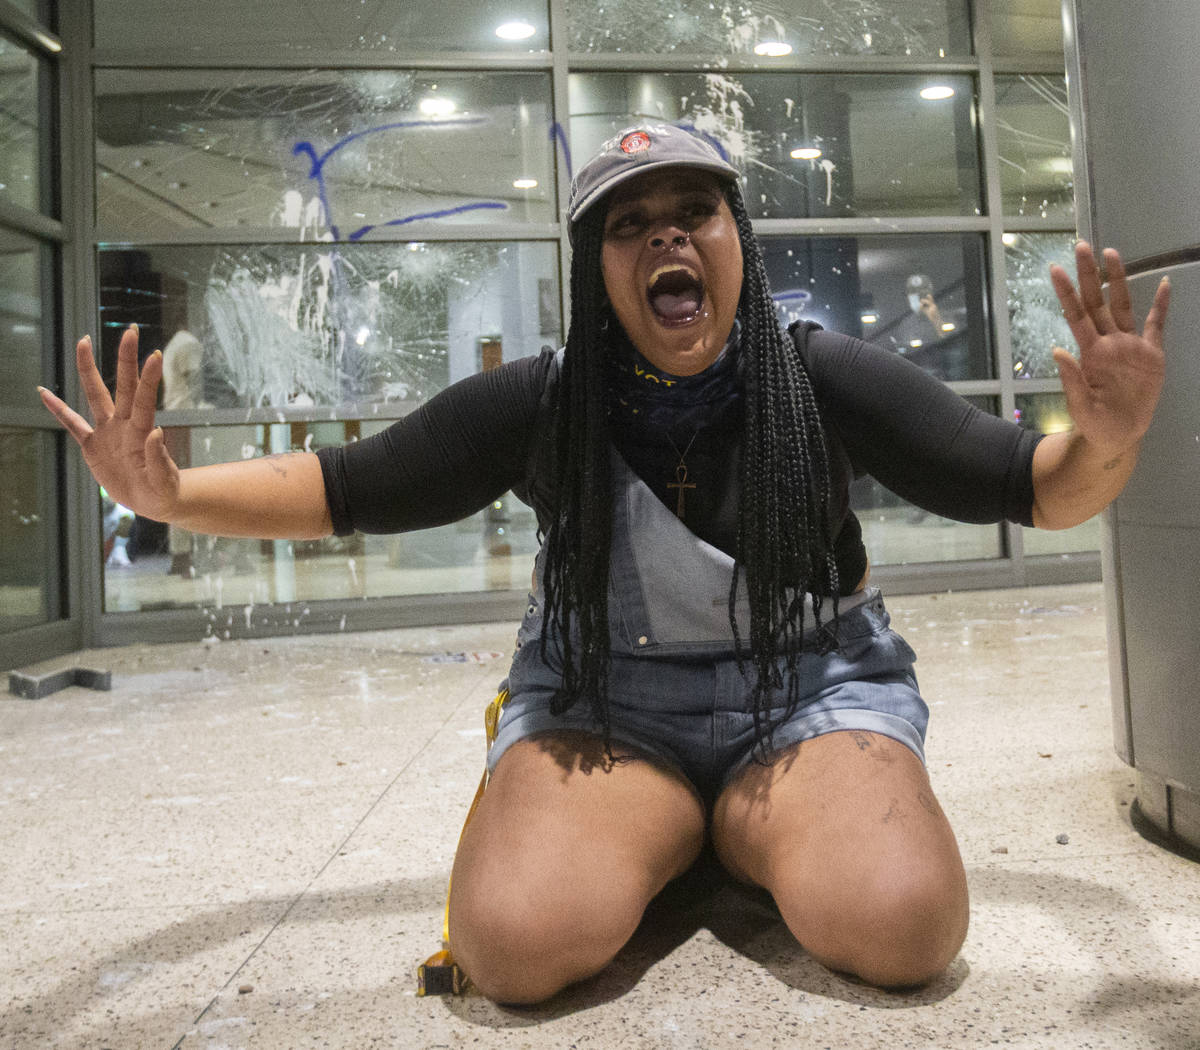 A woman pleads for protesters to stop breaking windows at an office building on South Las Vegas ...